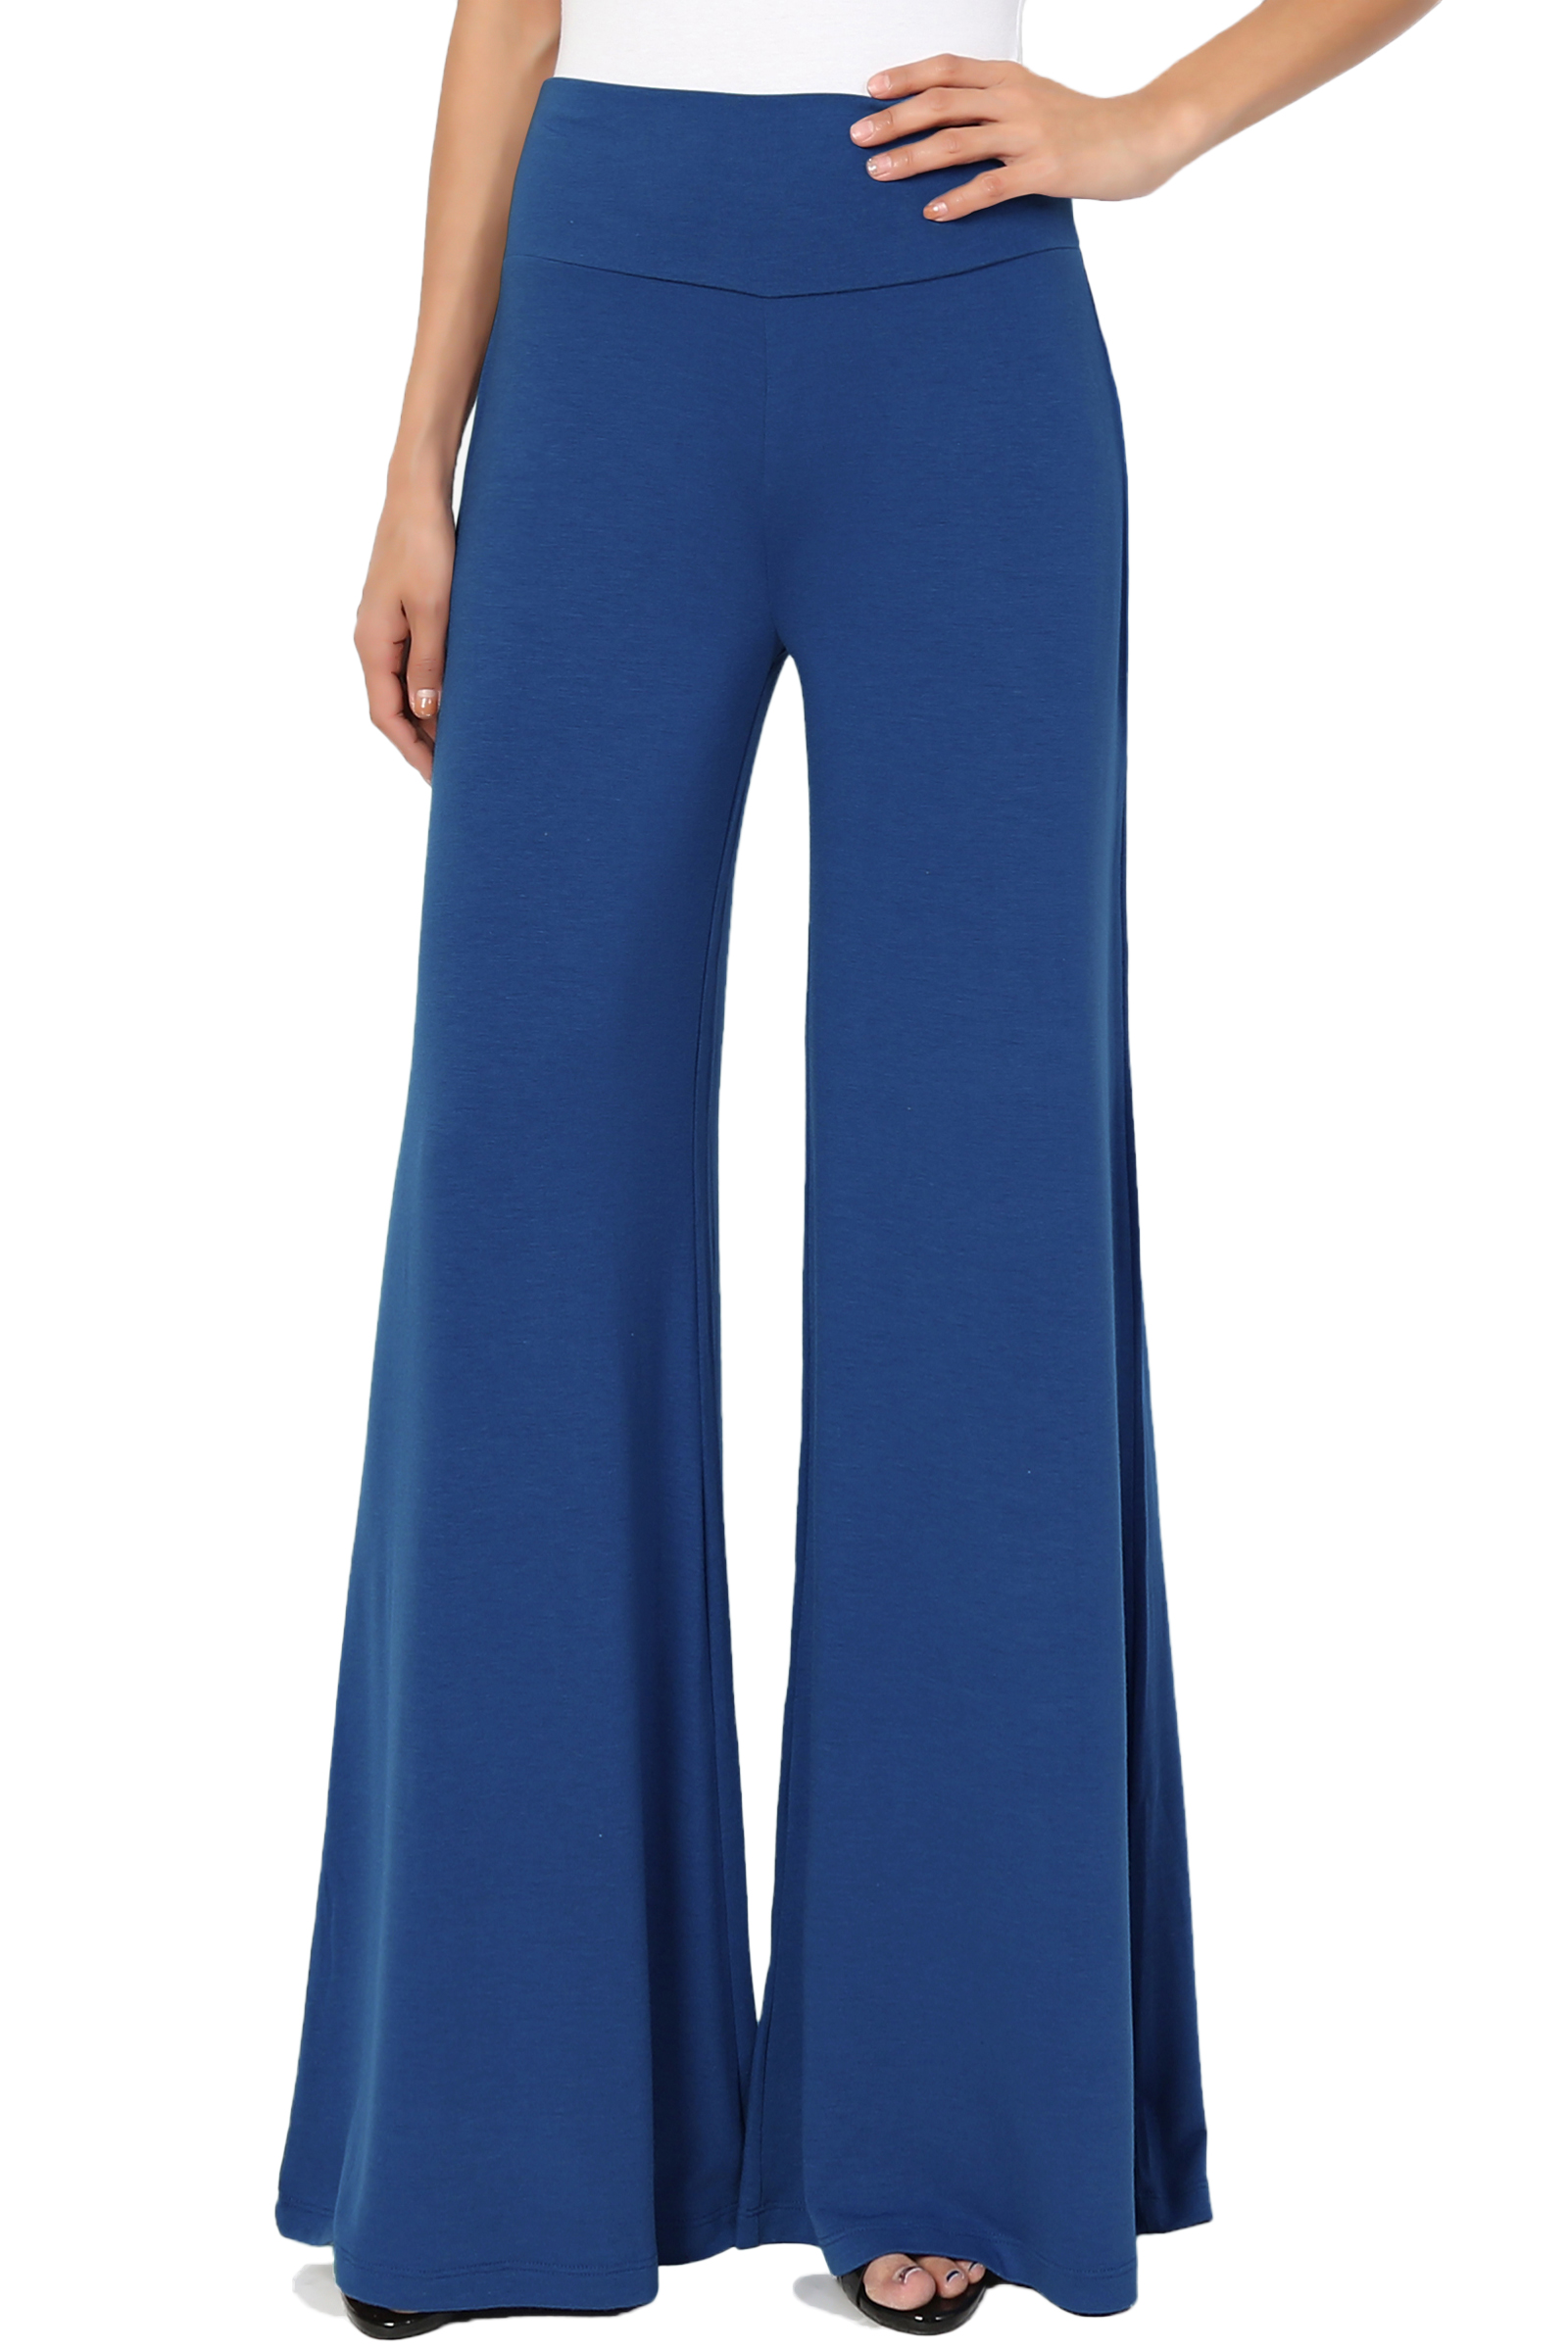 "TheMogan Women's S~3X 33.5"" High Waist Soft Jersey Wide Leg Palazzo Lounge Pants"